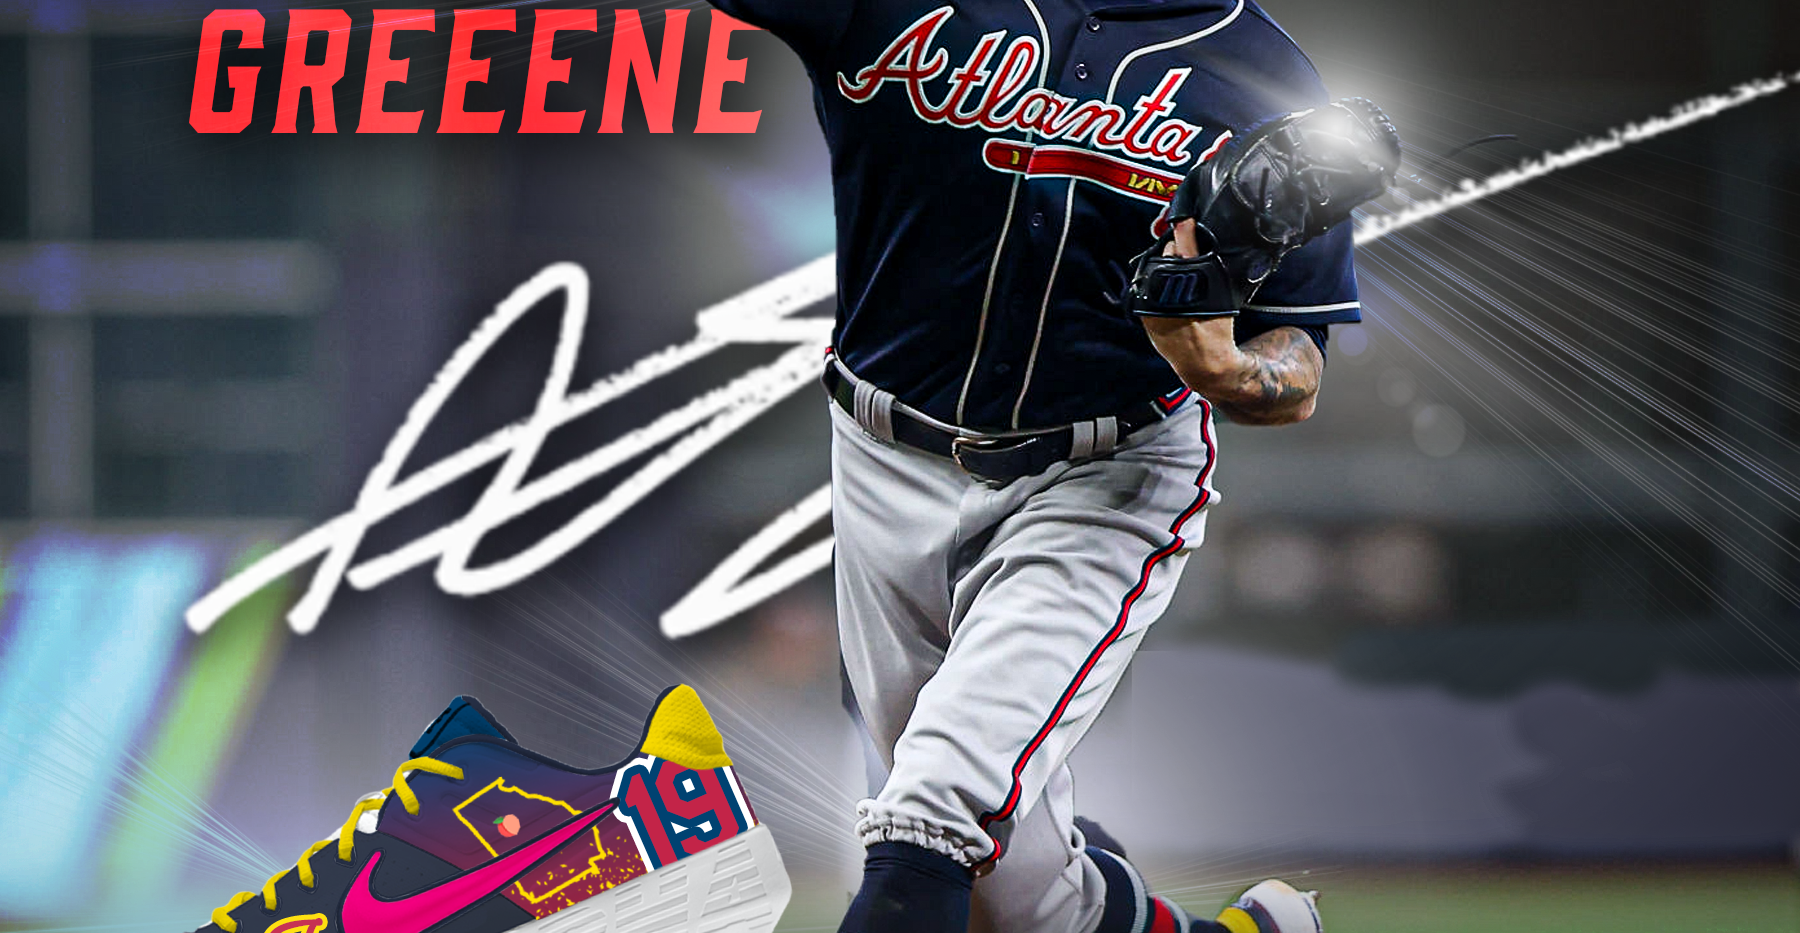 Shane Greene NLCS Cleats